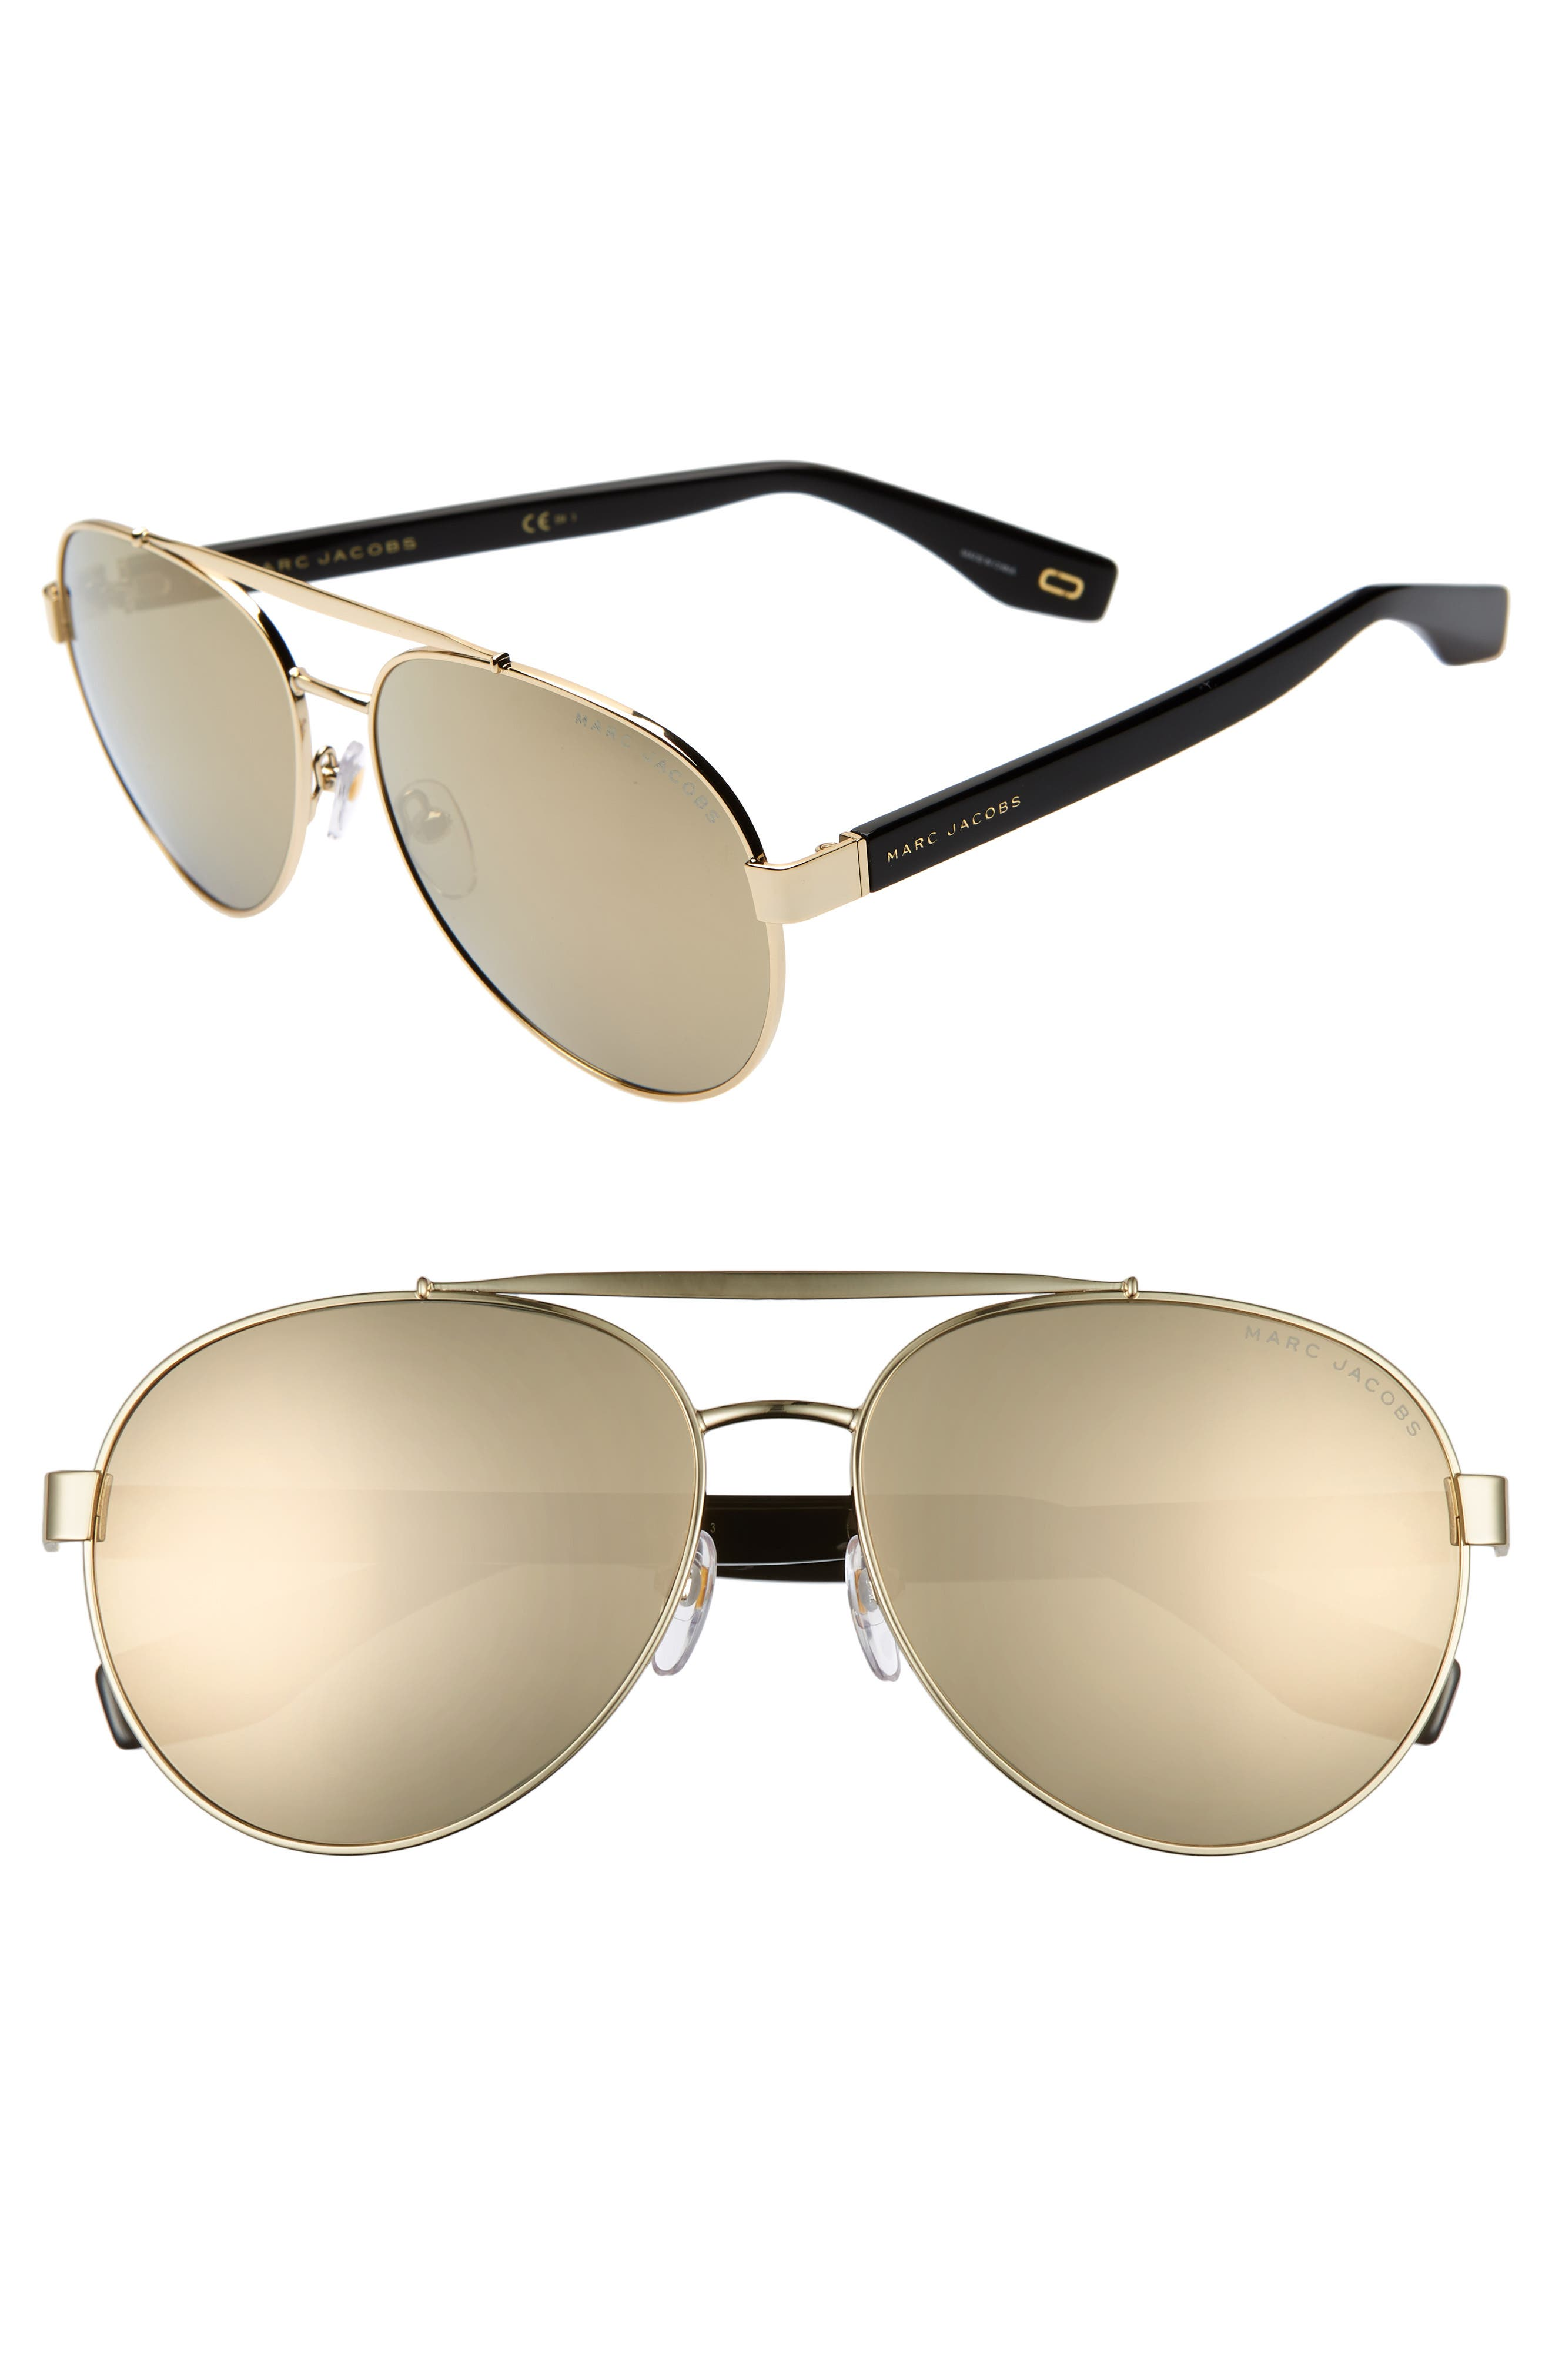 Image of THE MARC JACOBS 60mm Aviator Sunglasses